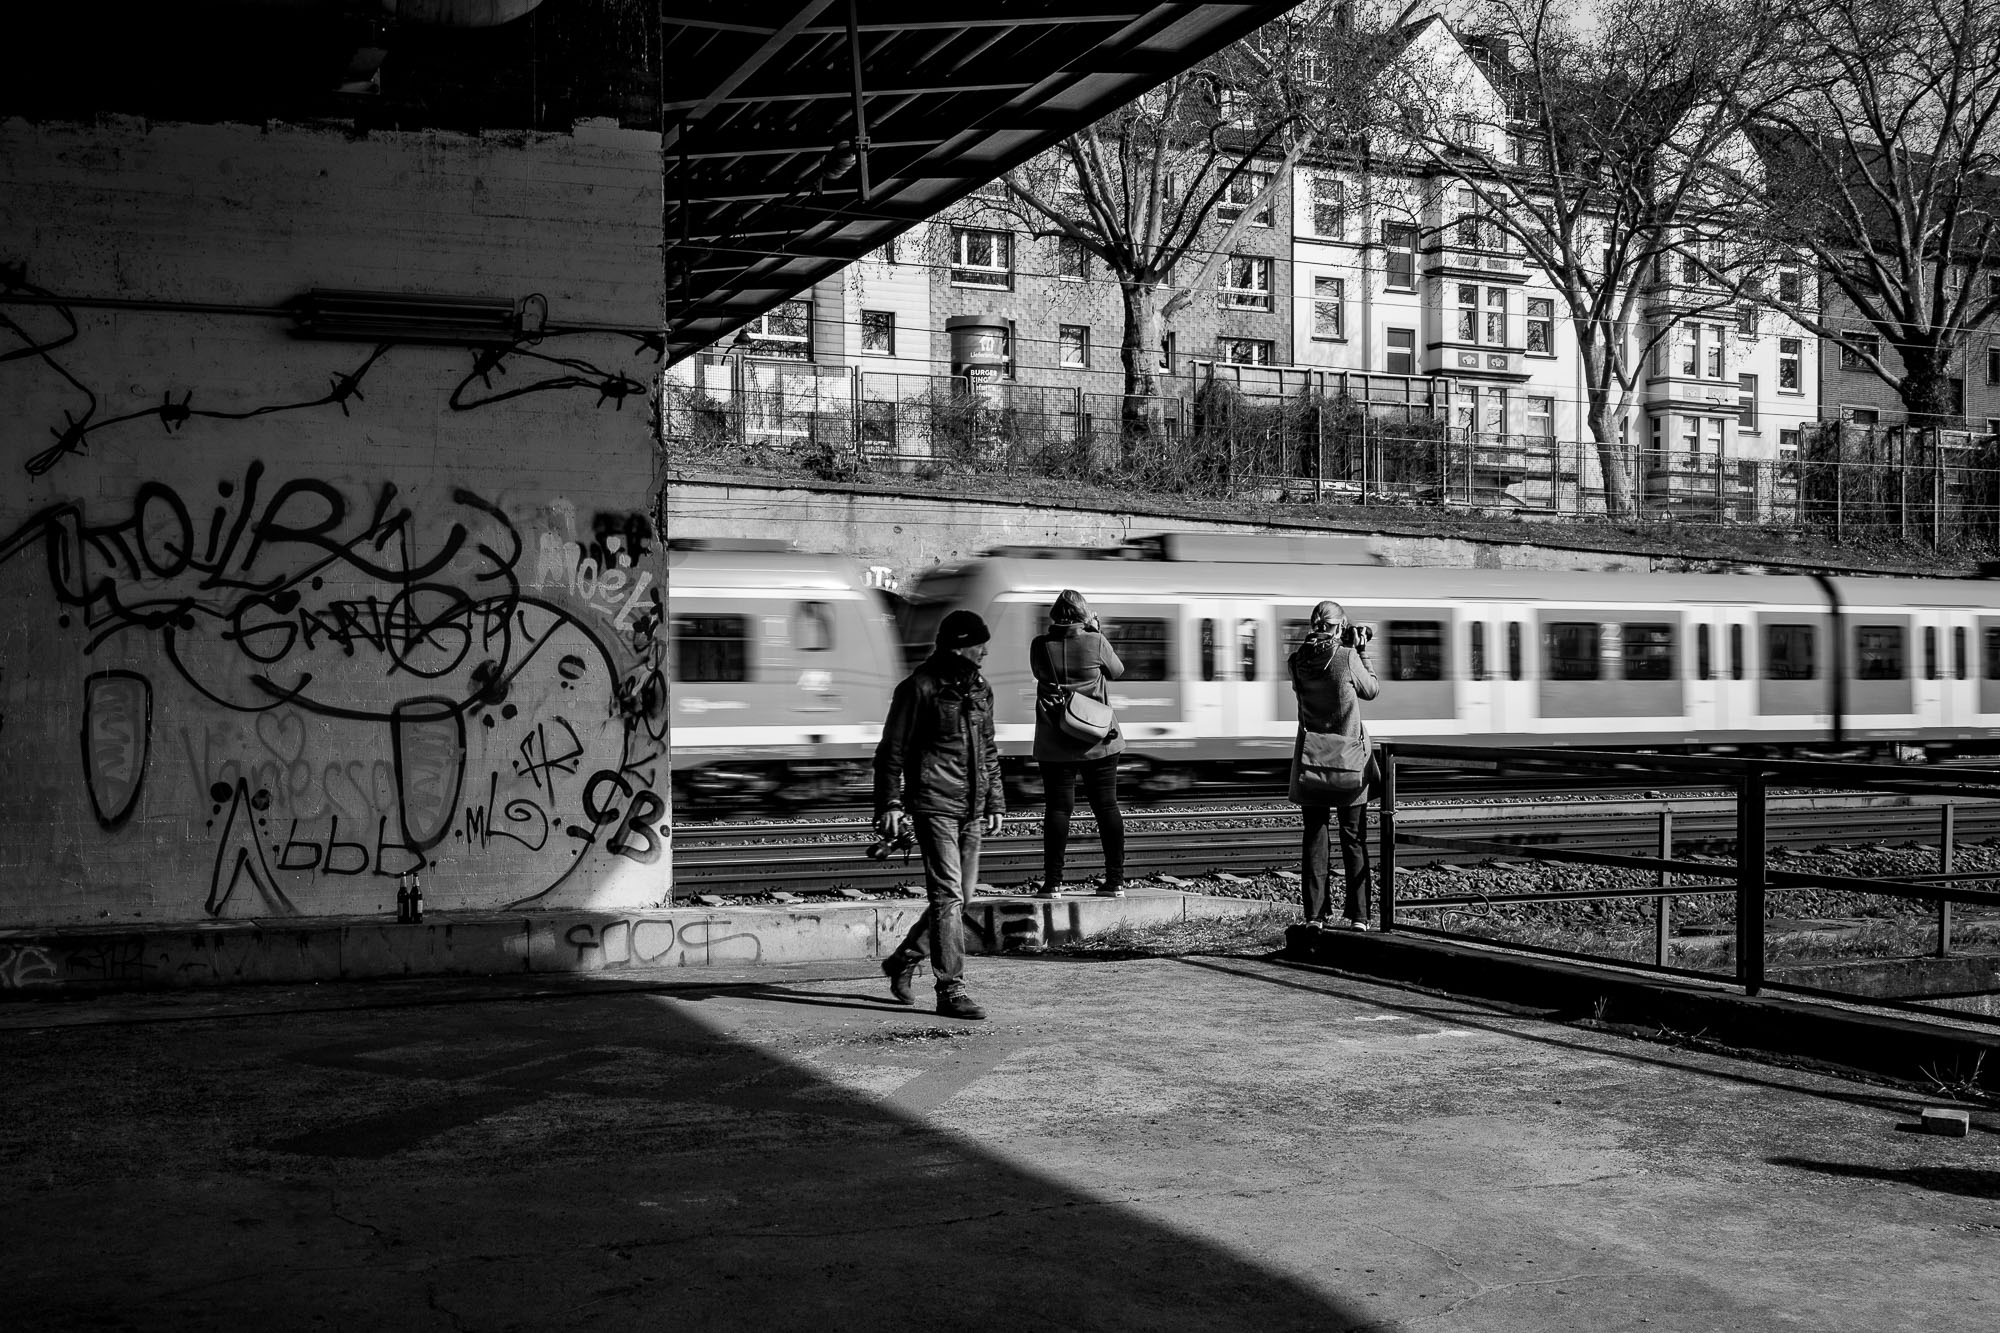 Photographers taking photos of a train passing by